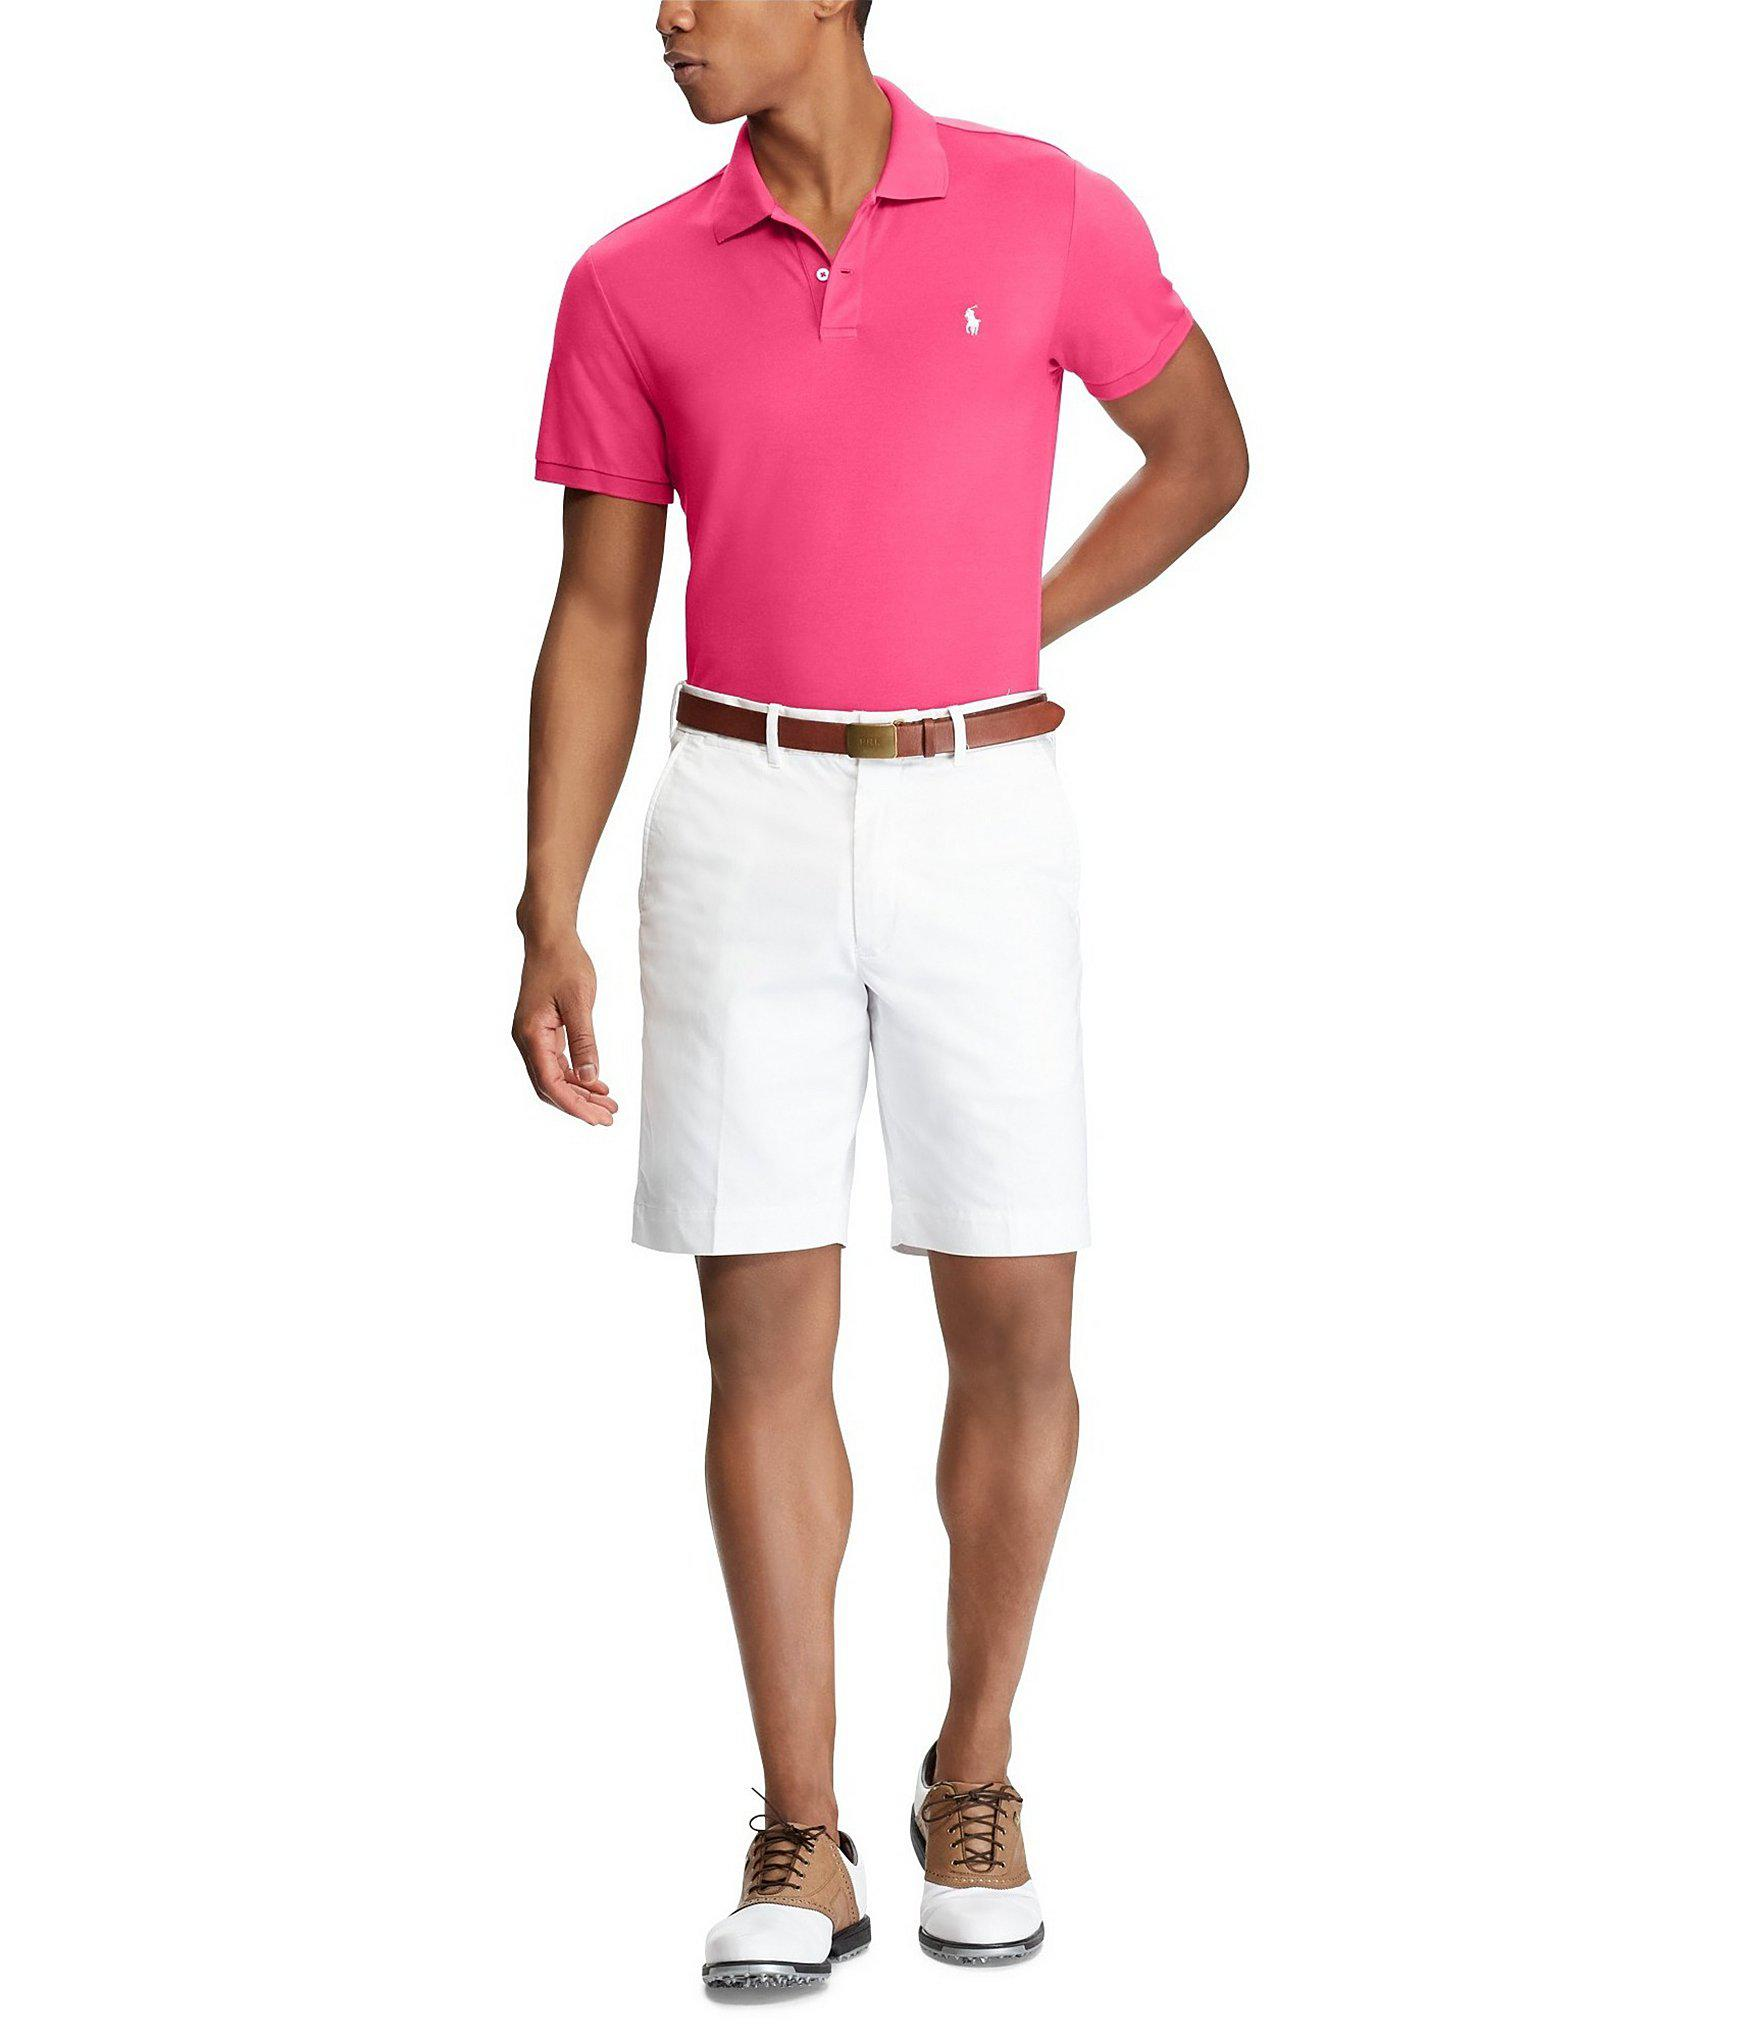 26fc05a13 Polo Ralph Lauren Polo Golf Custom Slim-fit Pique Performance Short ...